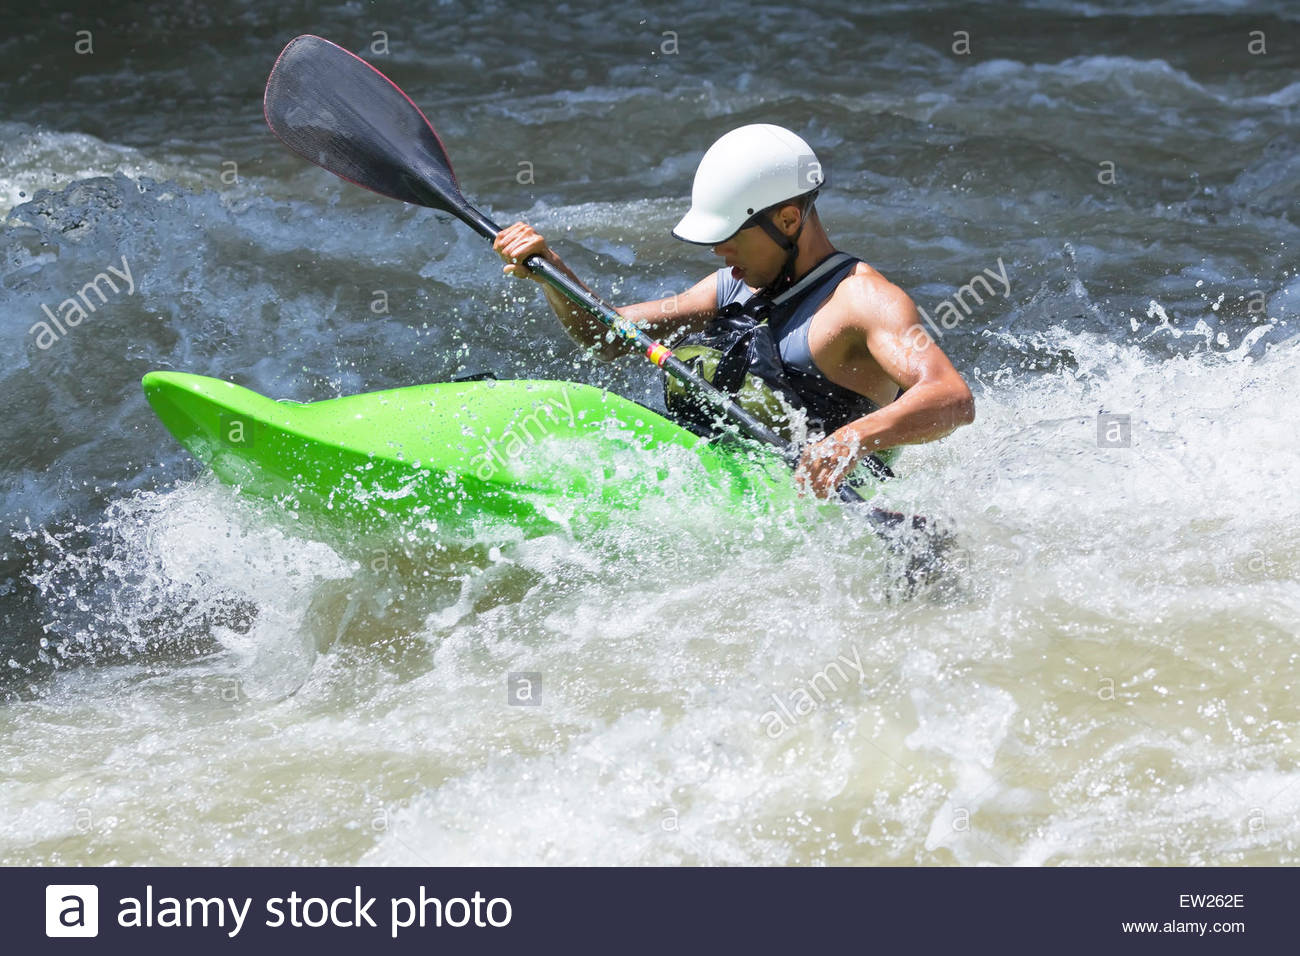 Kayak surfing in whitewater, Pacuare river, Turrialba, Costa Rica, Central America - Stock Image